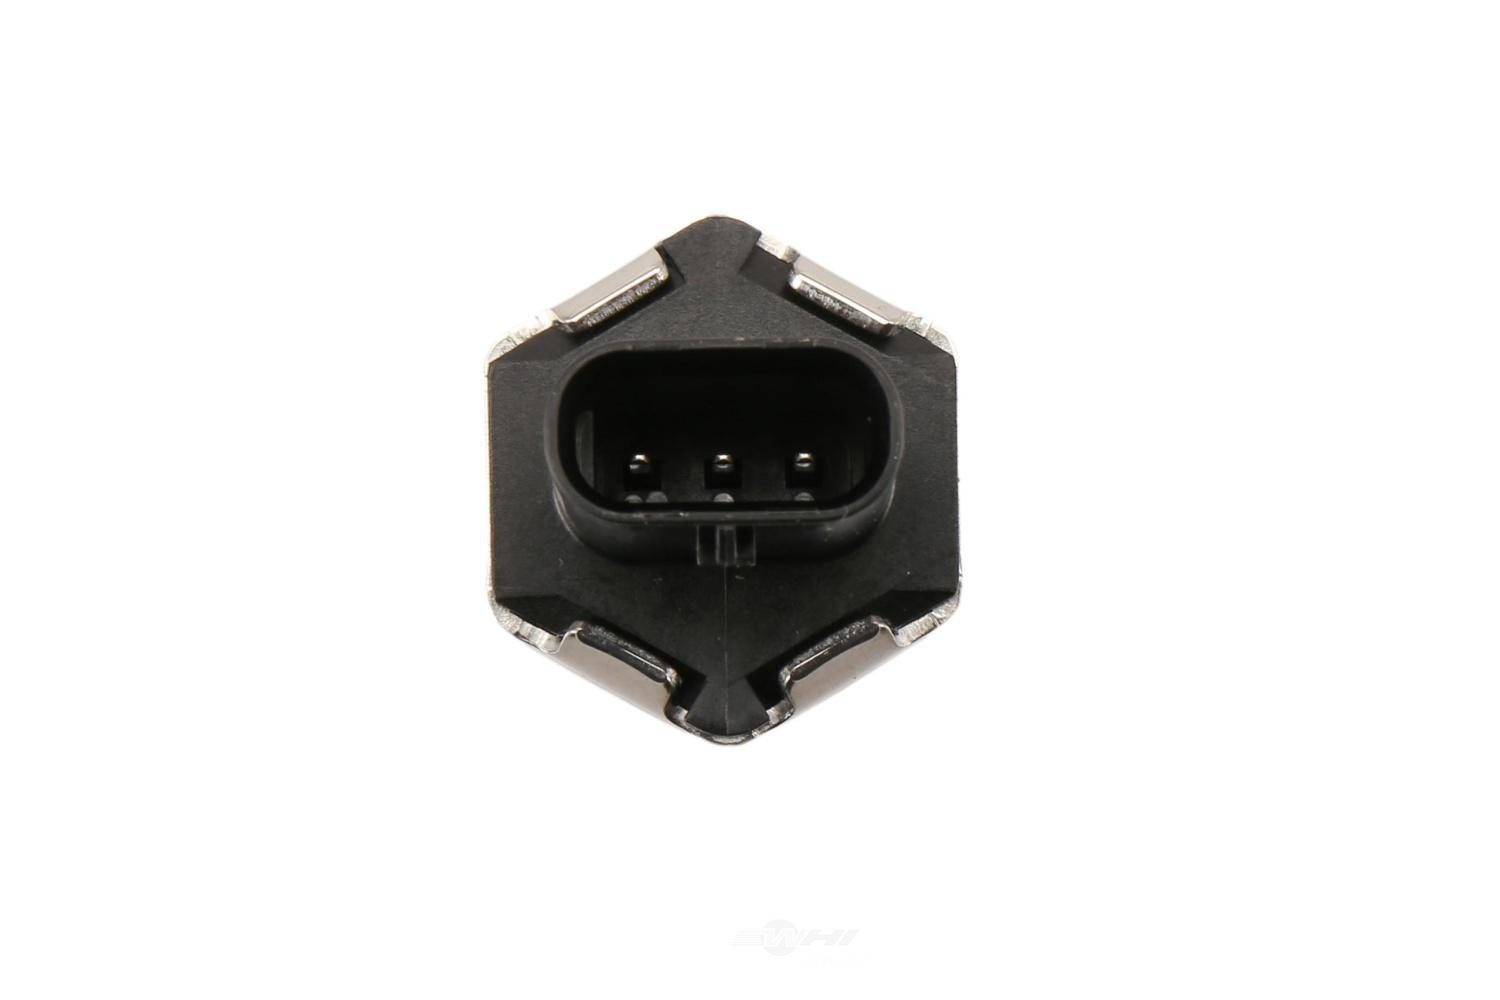 ACDELCO GM ORIGINAL EQUIPMENT - Fuel Injection Fuel Rail Pressure Sensor - DCB 12684286